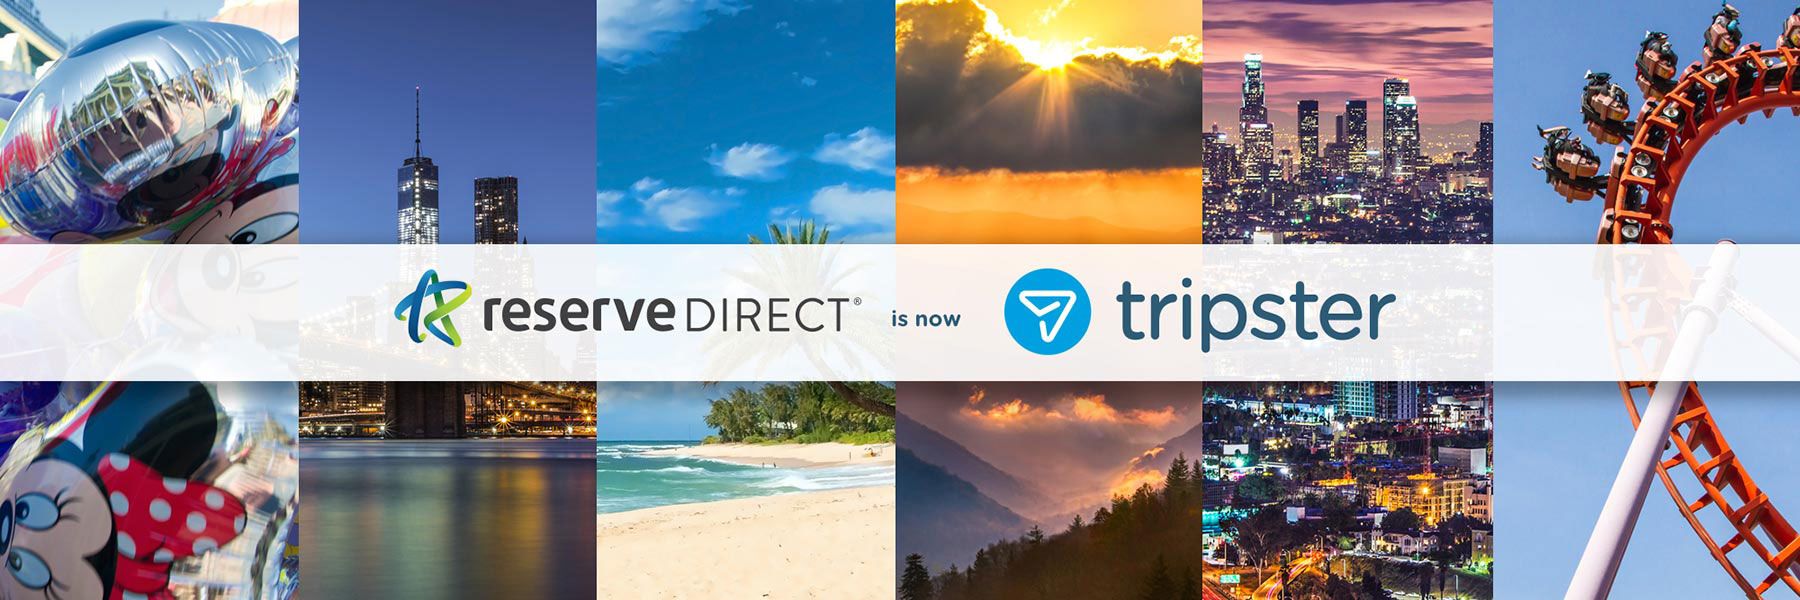 Reserve Direct is now Tripster!